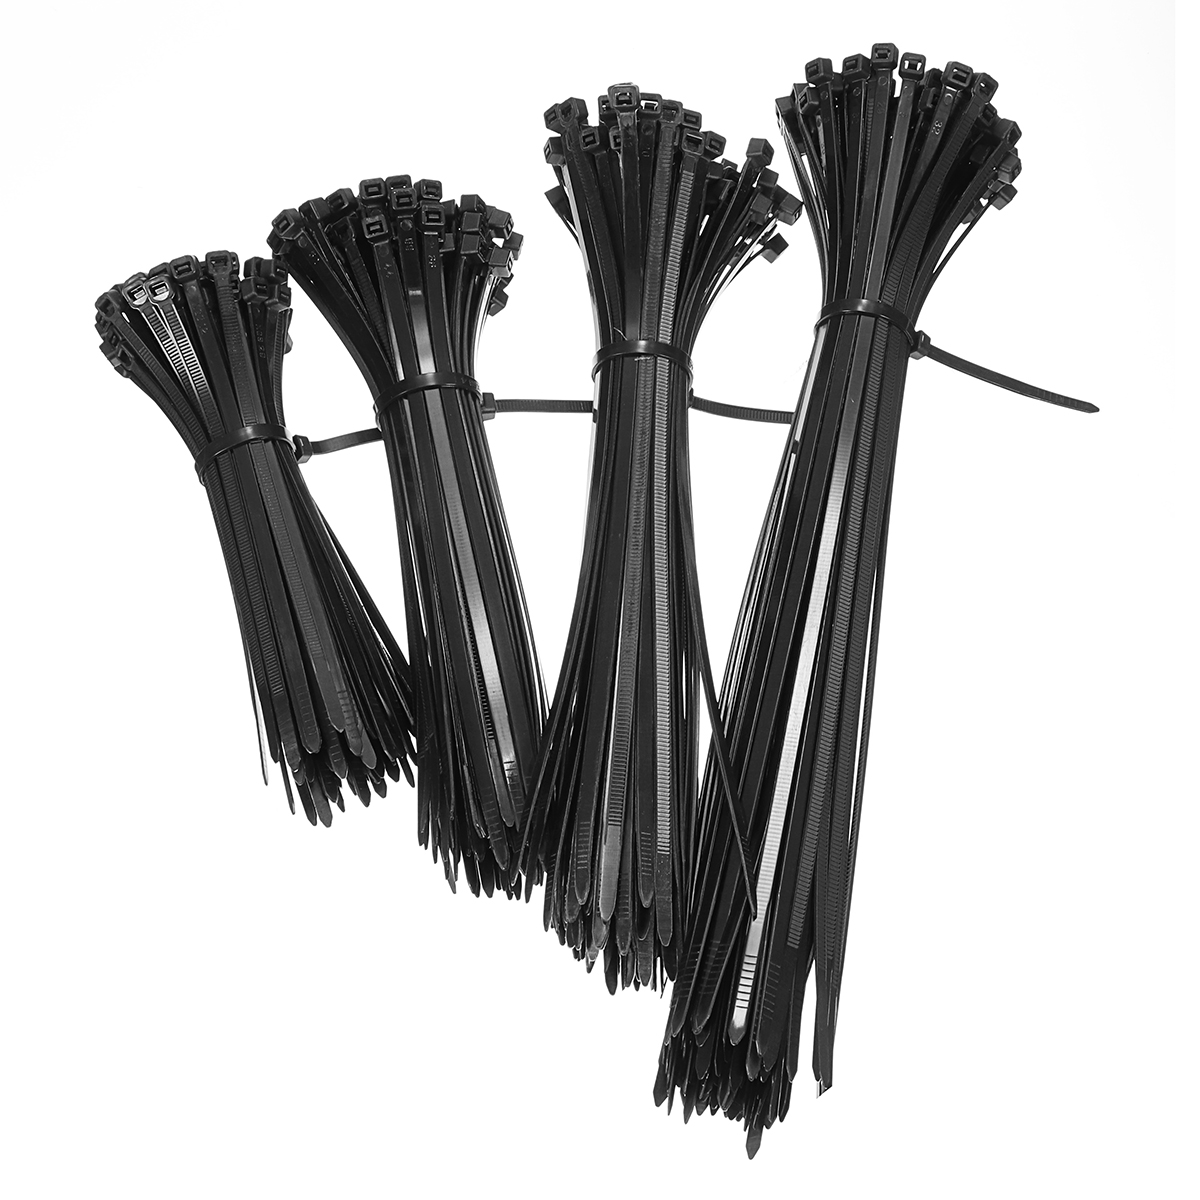 100pcs Black Nylon Plastic Network Cable Zip Tie Cord Strap Self-Locing Wire 150/200/250/300mm Zip Trim Wrap Cable Loop Tie 100pcs lot 100mm x 3mm self locking network nylon plastic cable wire zip tie cord strap